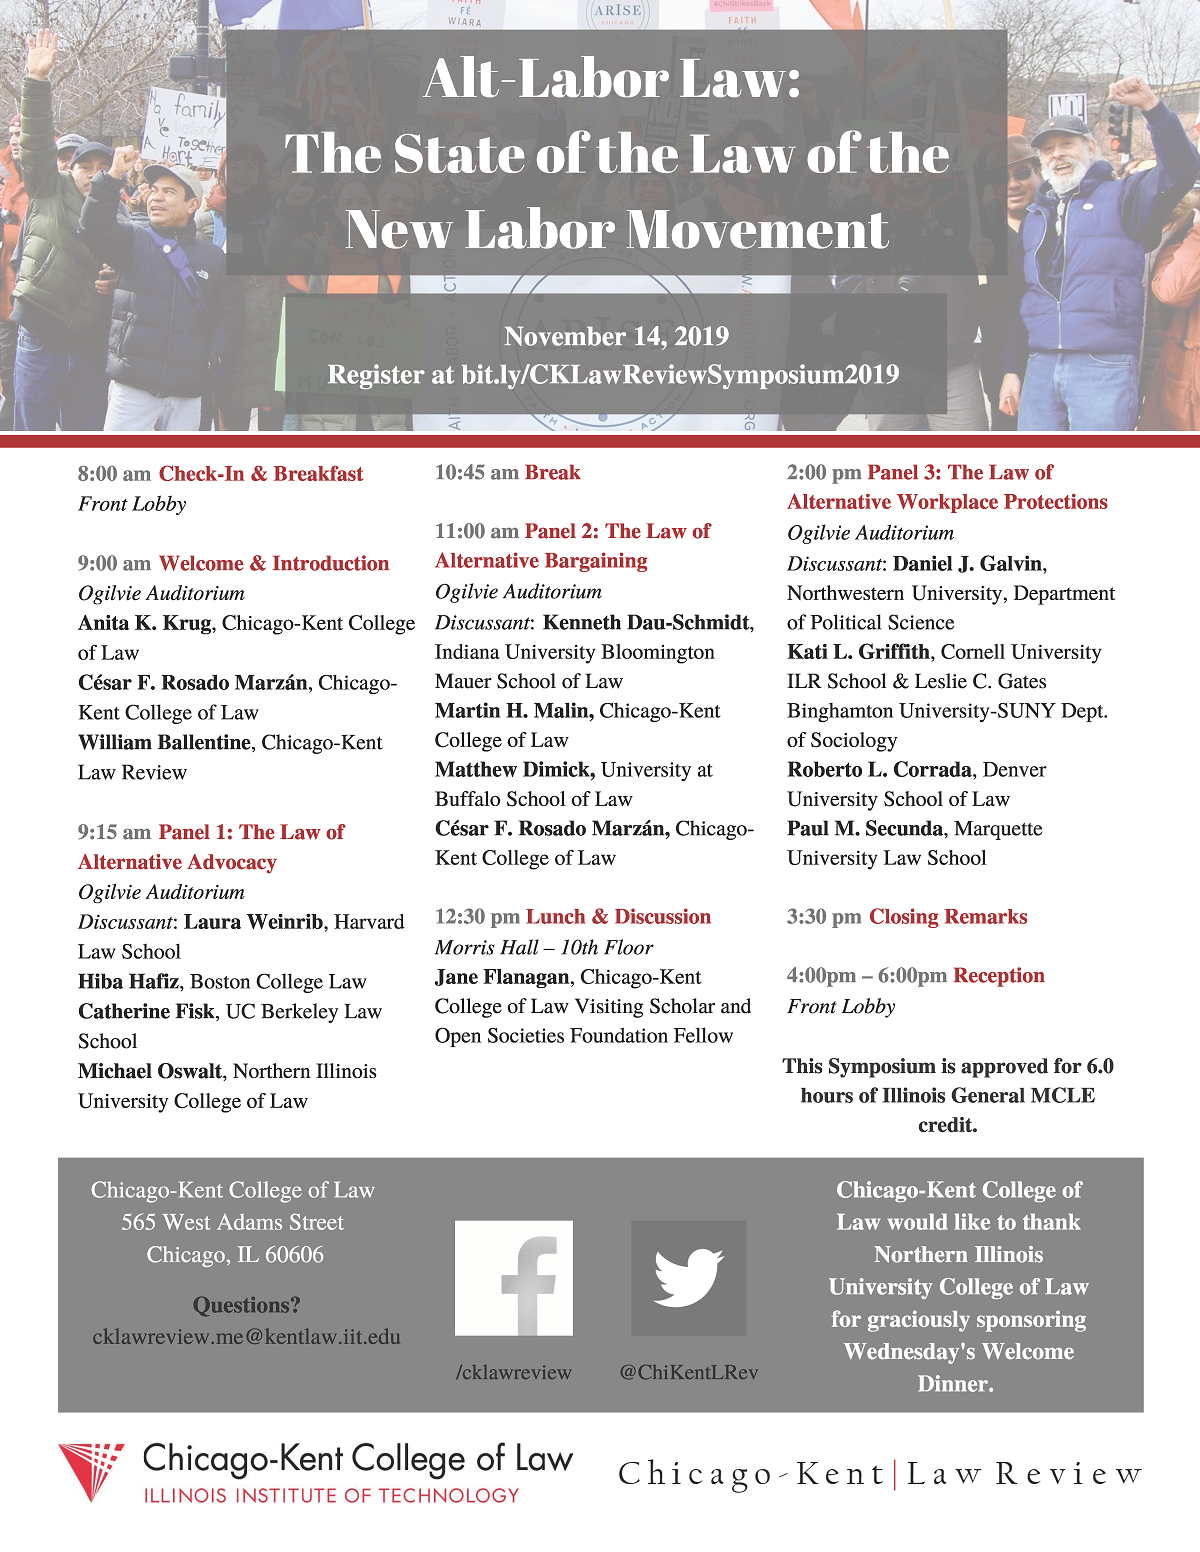 Alt-Labor Law Symposium 2019 Flyer.png